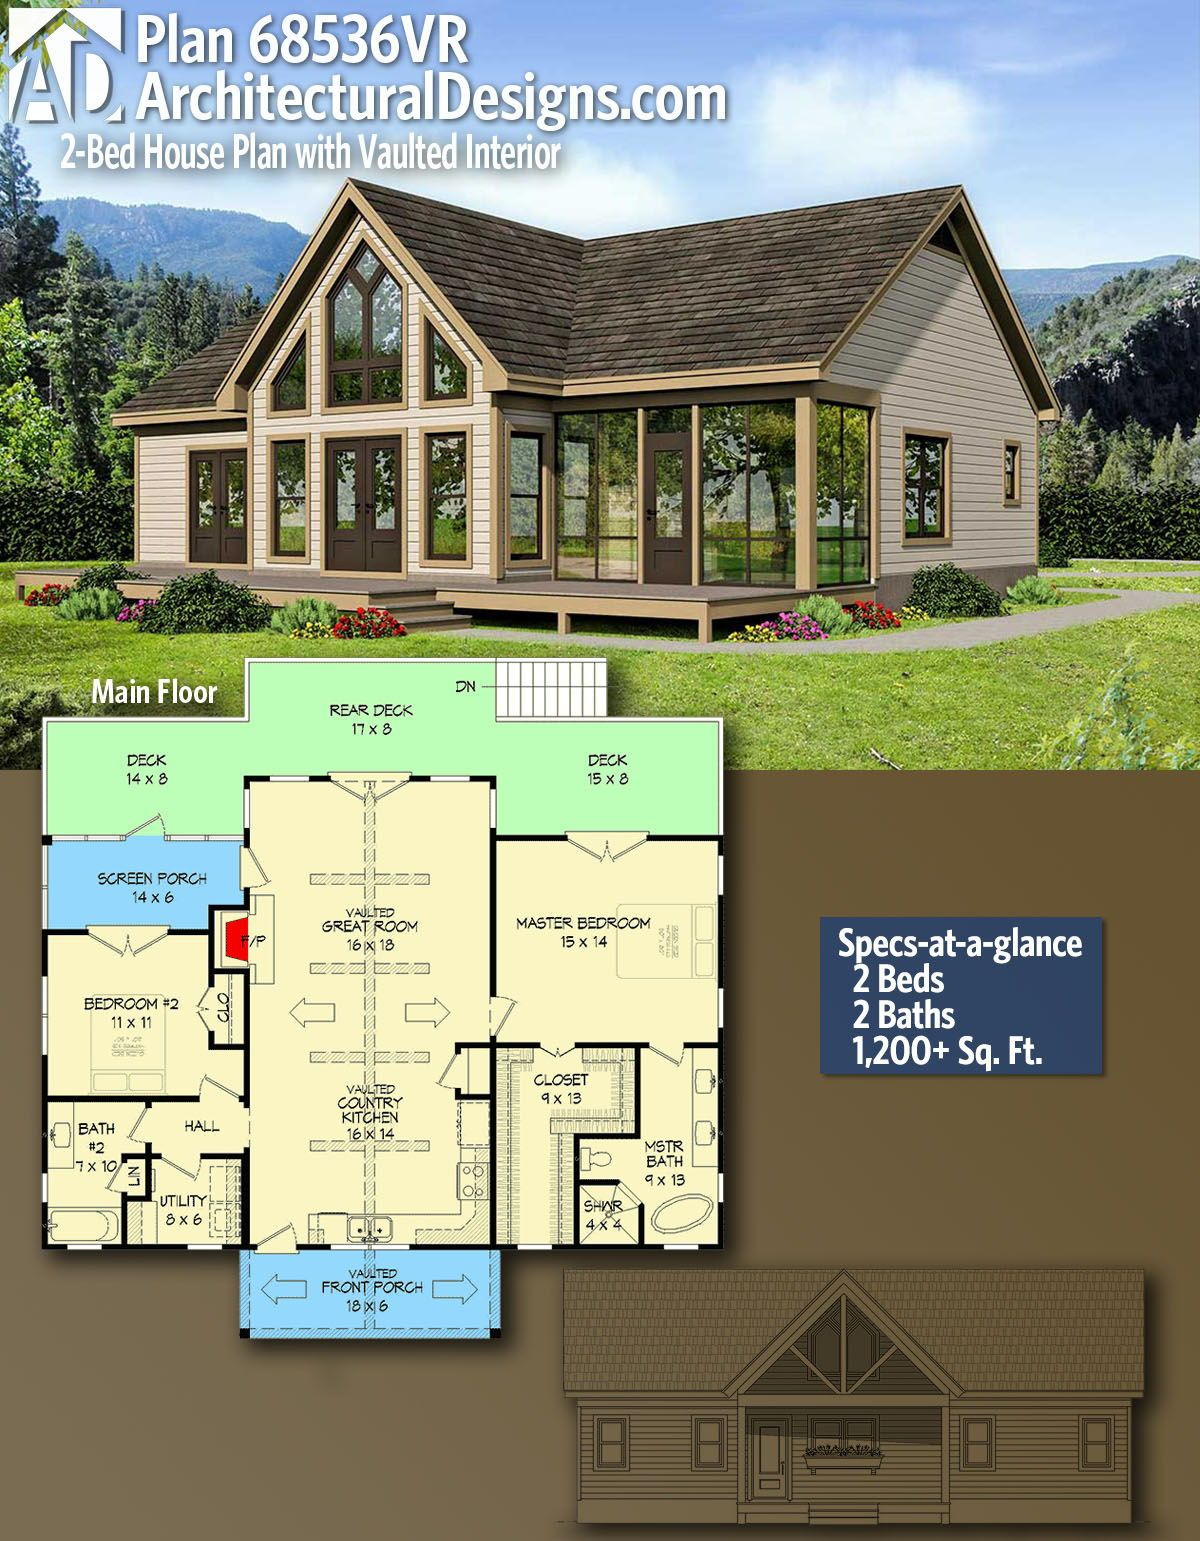 Cost to Build 1200 Sq Ft Cabin Best Of Plan Vr 2 Bed House Plan with Vaulted Interior In 2020